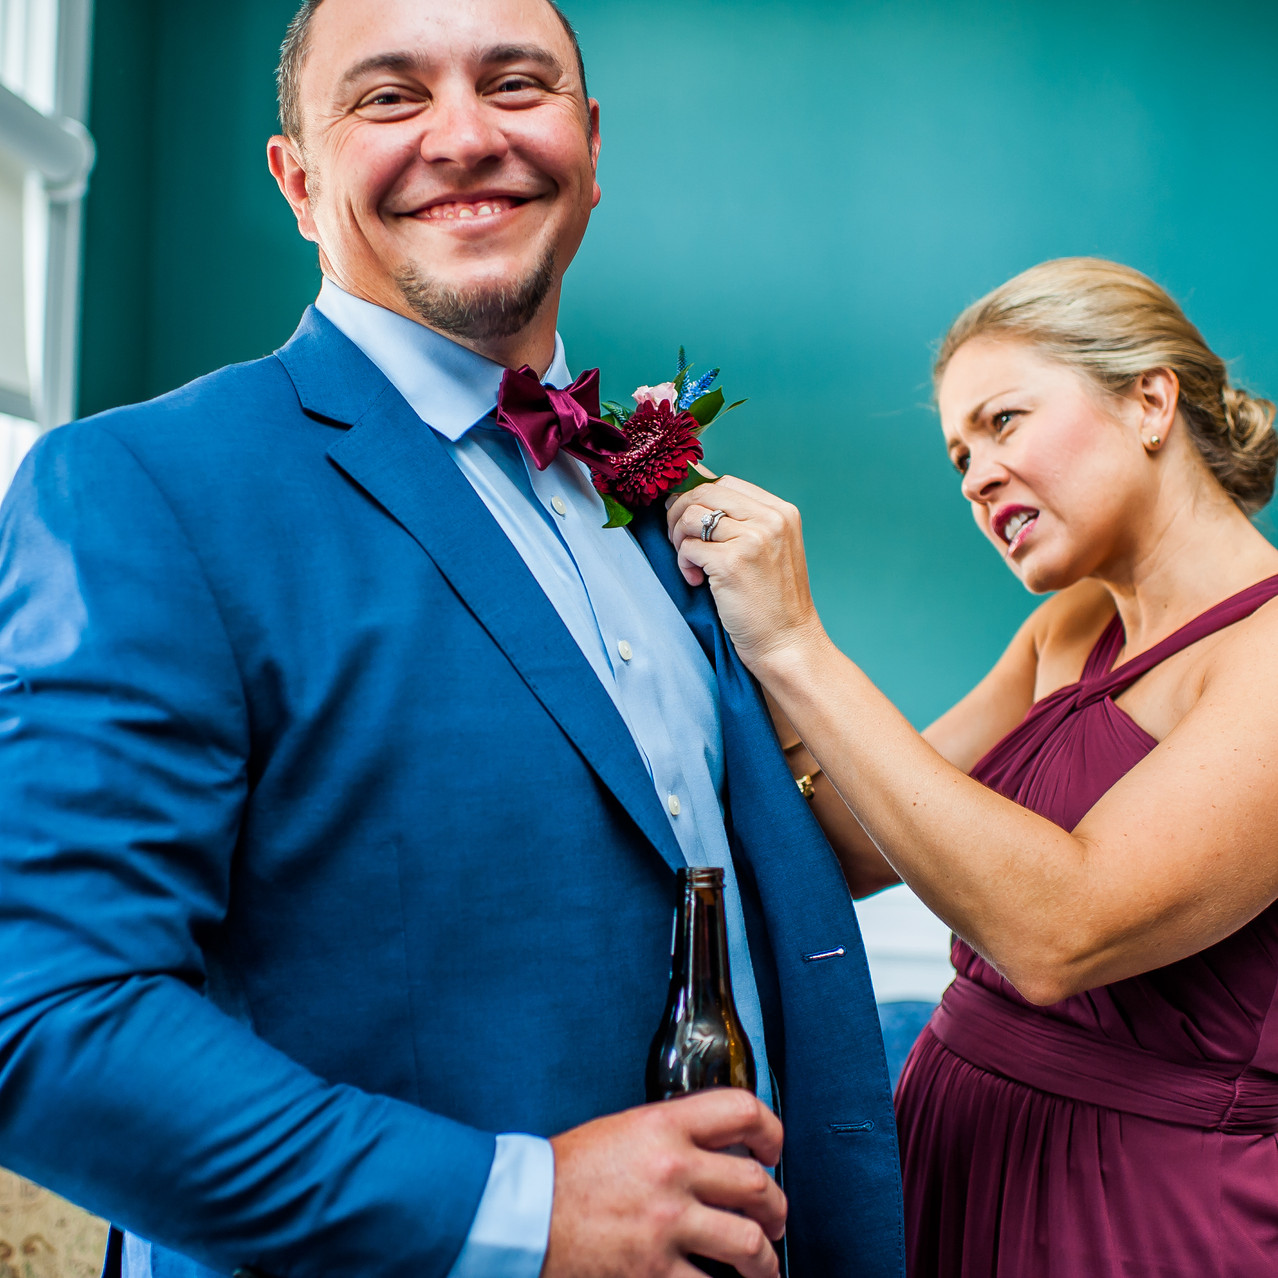 7-8-2018_Brittany + Eric-GR-277